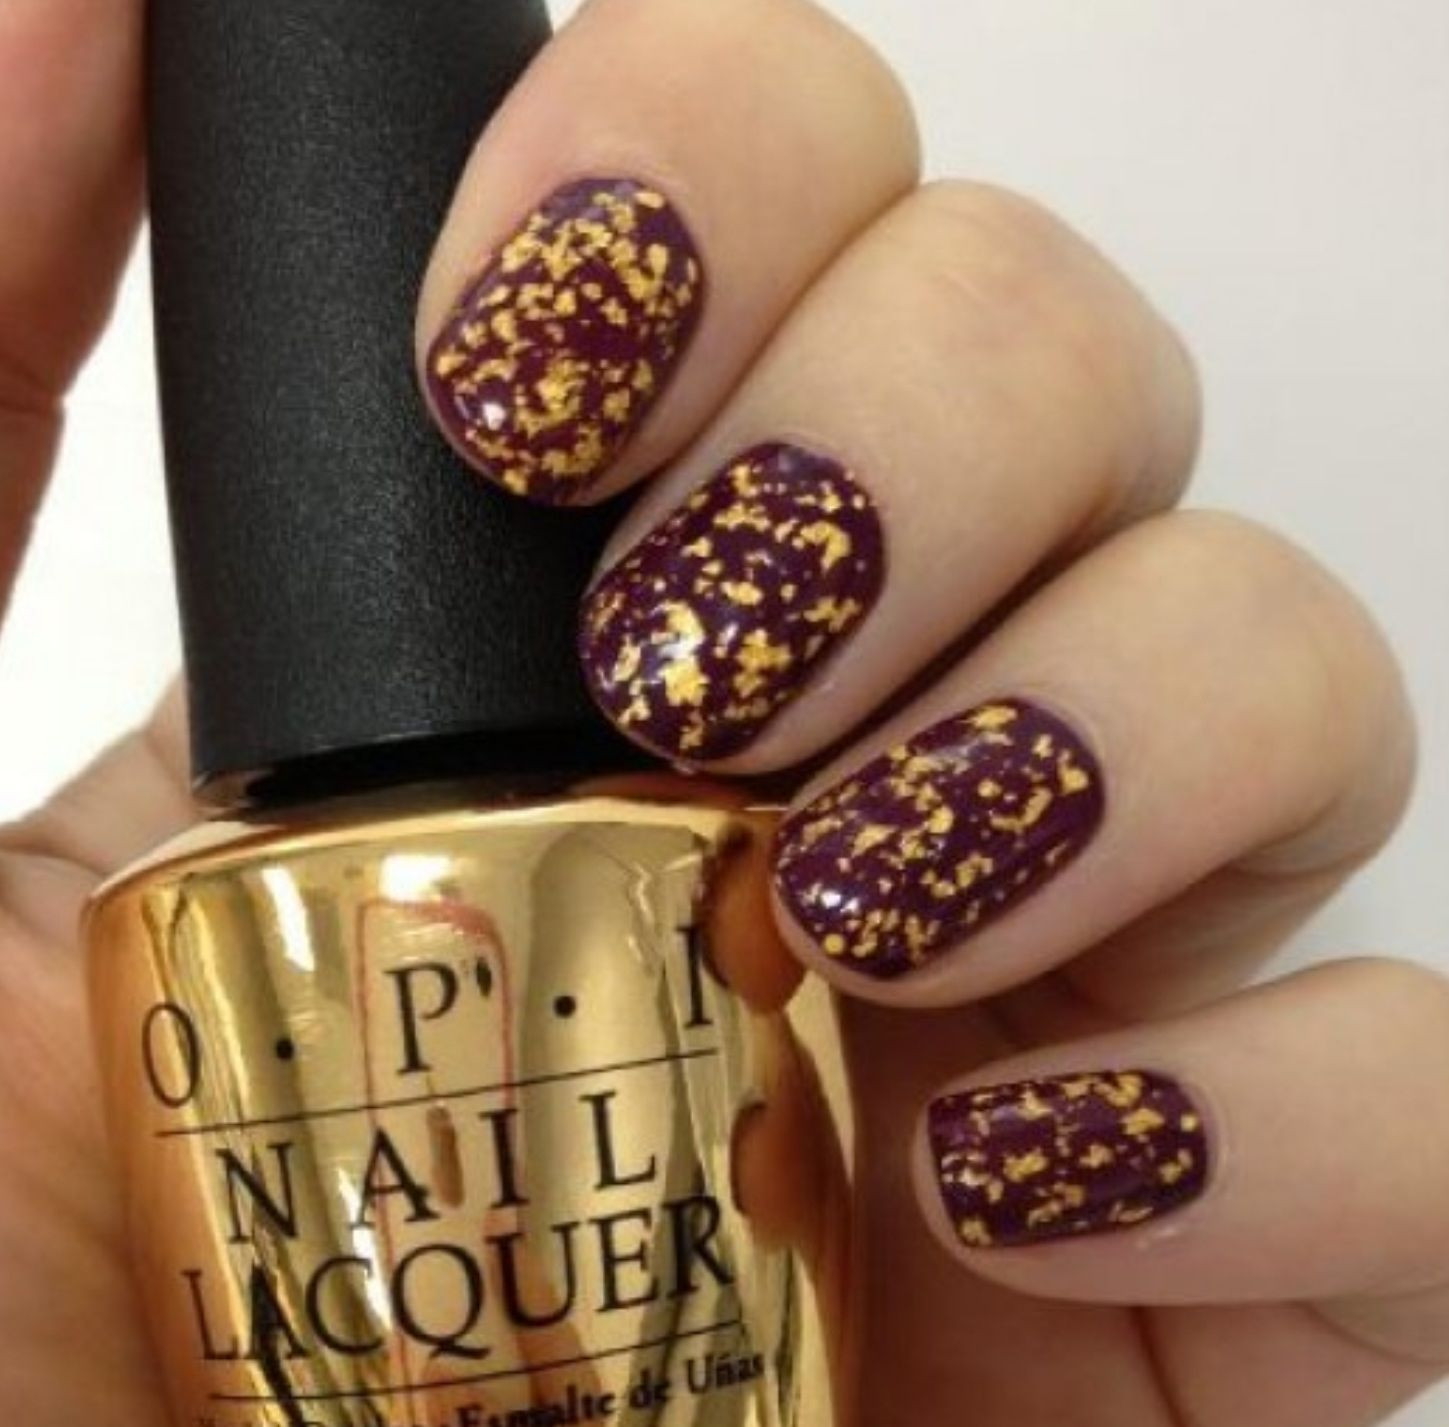 OPI nails for Winter 2013